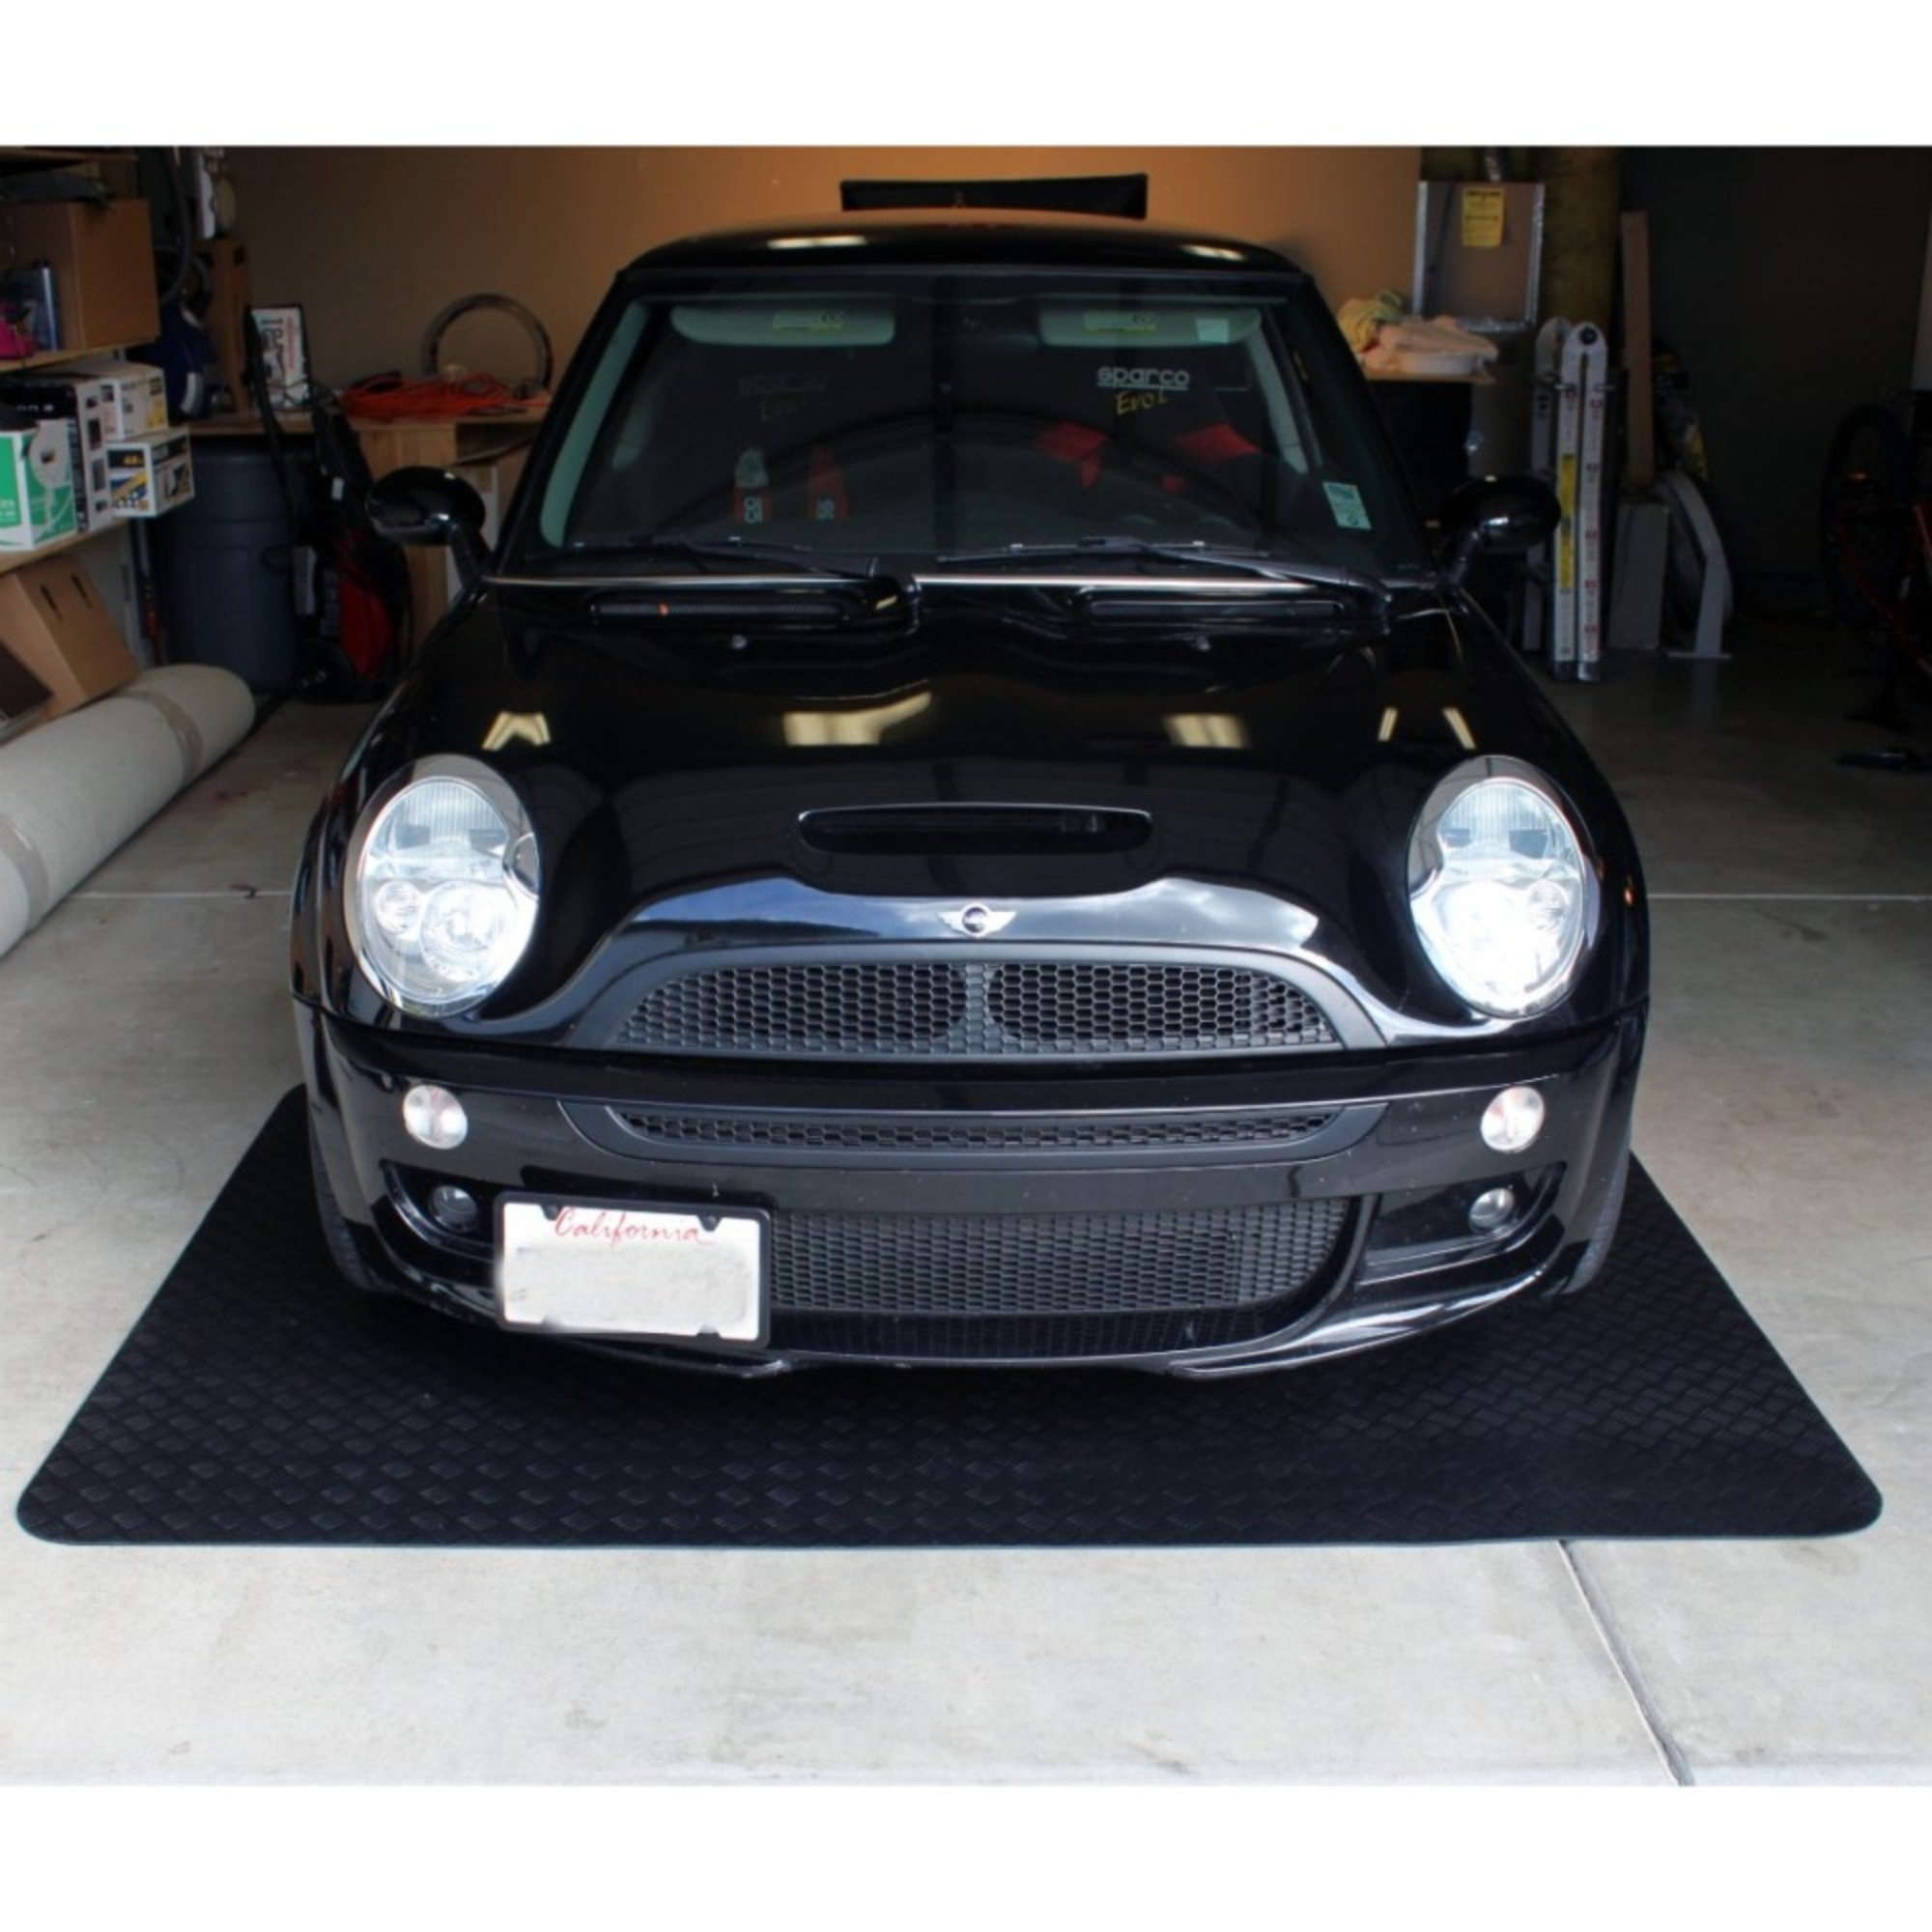 Mats Inc. Garage Floor Protection Utility Mat, Black, 5' x 7'